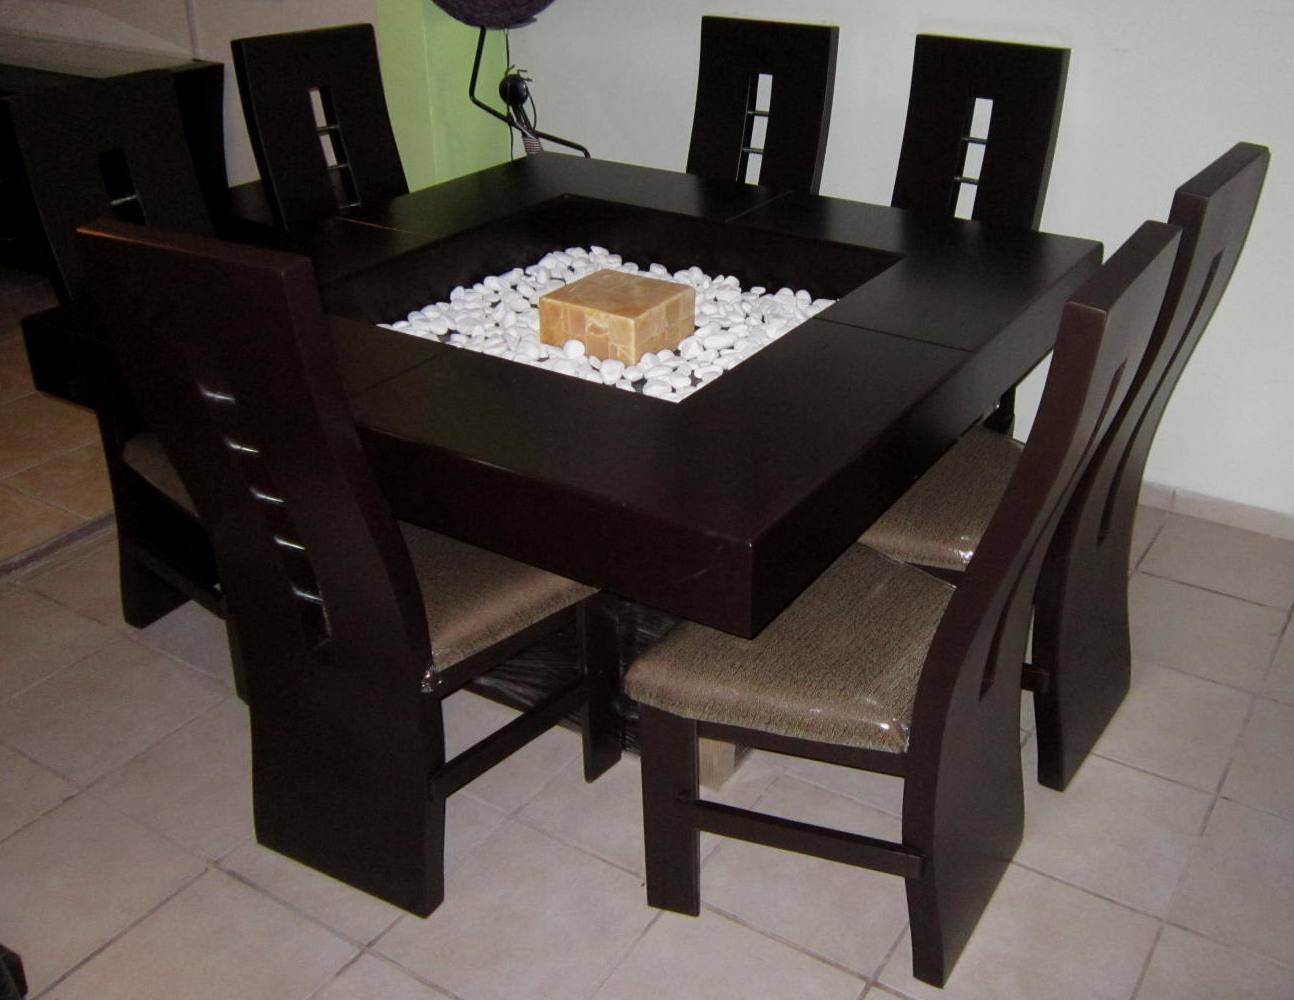 30 comfort contemporary brown wood tables with chairs for Comedores minimalistas